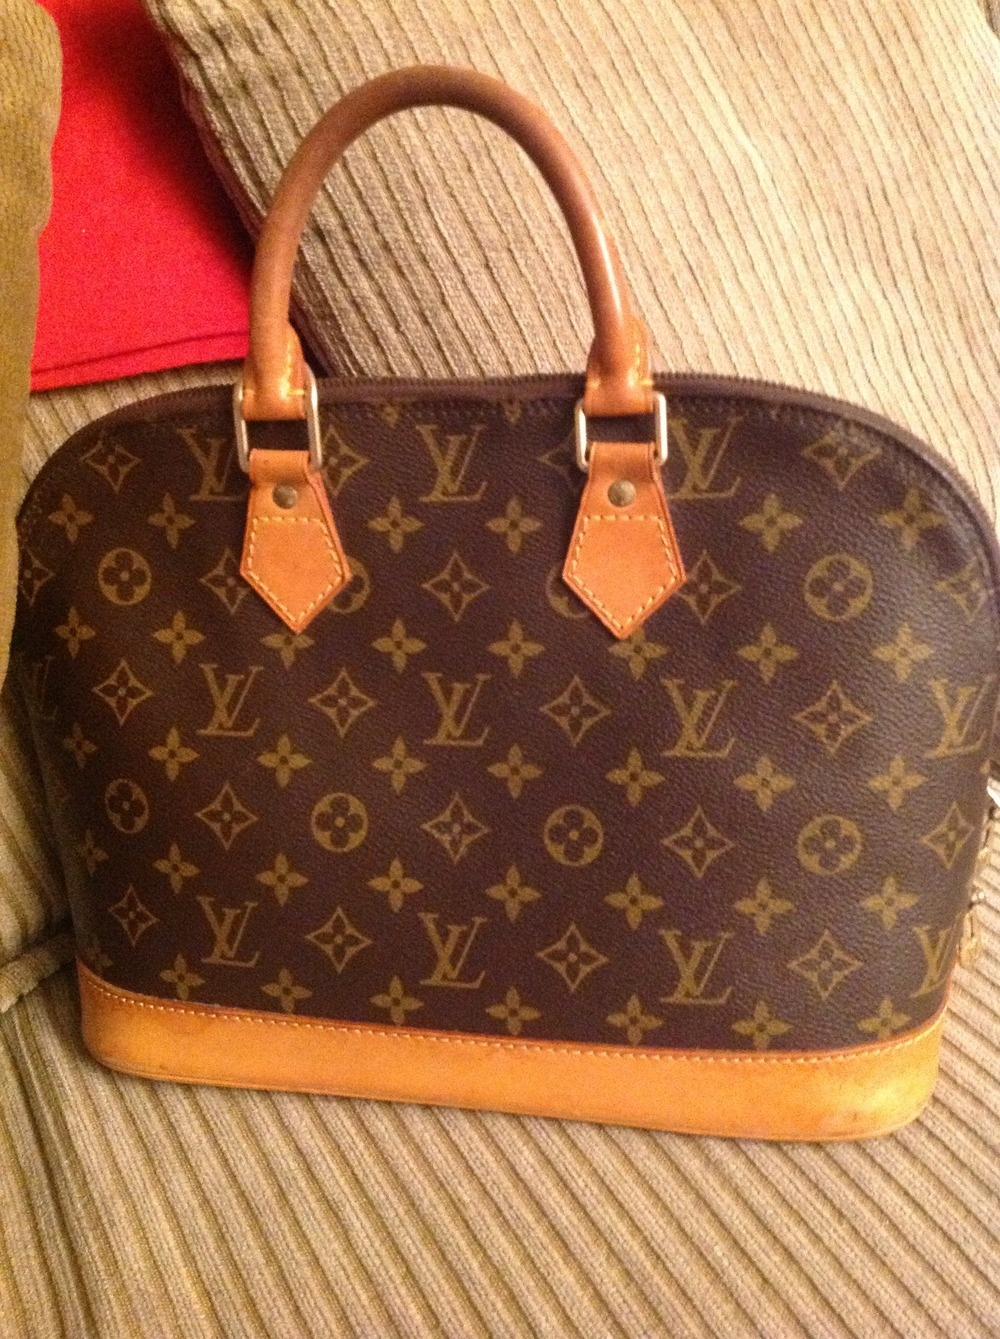 Used Louis Vuitton Purses >> Gently Used Louis Vuitton Handbags